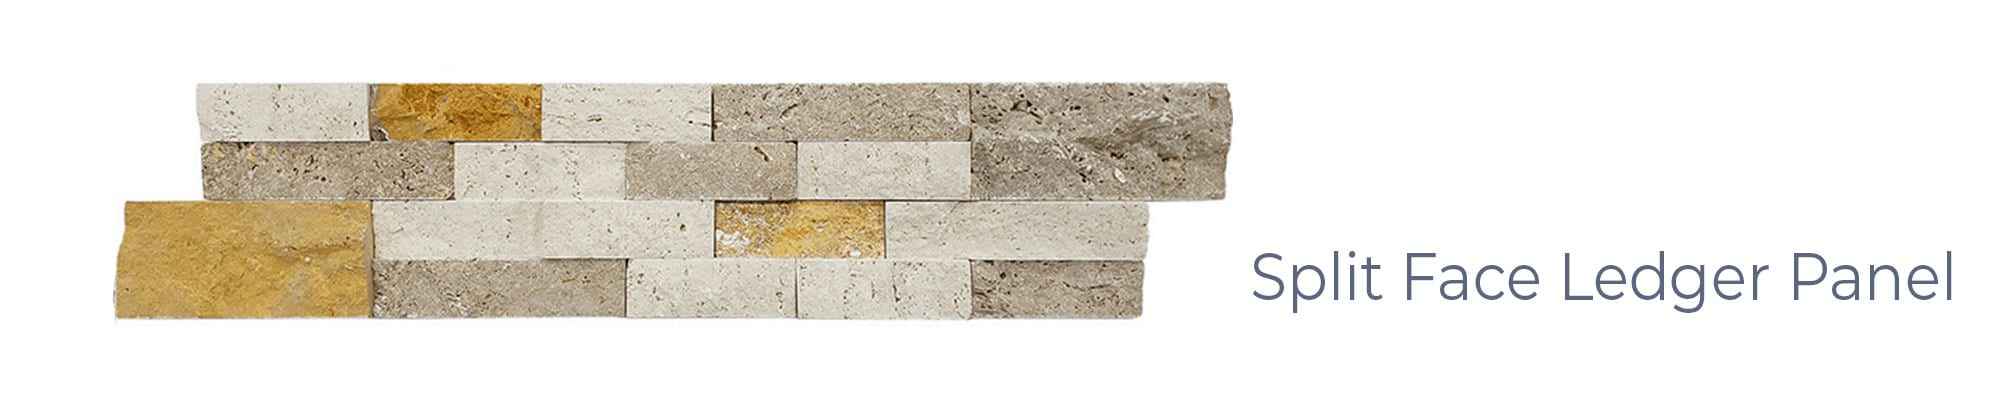 Stoneline-Group-Mix-Travertine-Marble-Collection-Marble-VeneerSpliti-Face-,Ledger-Panel-Pictures